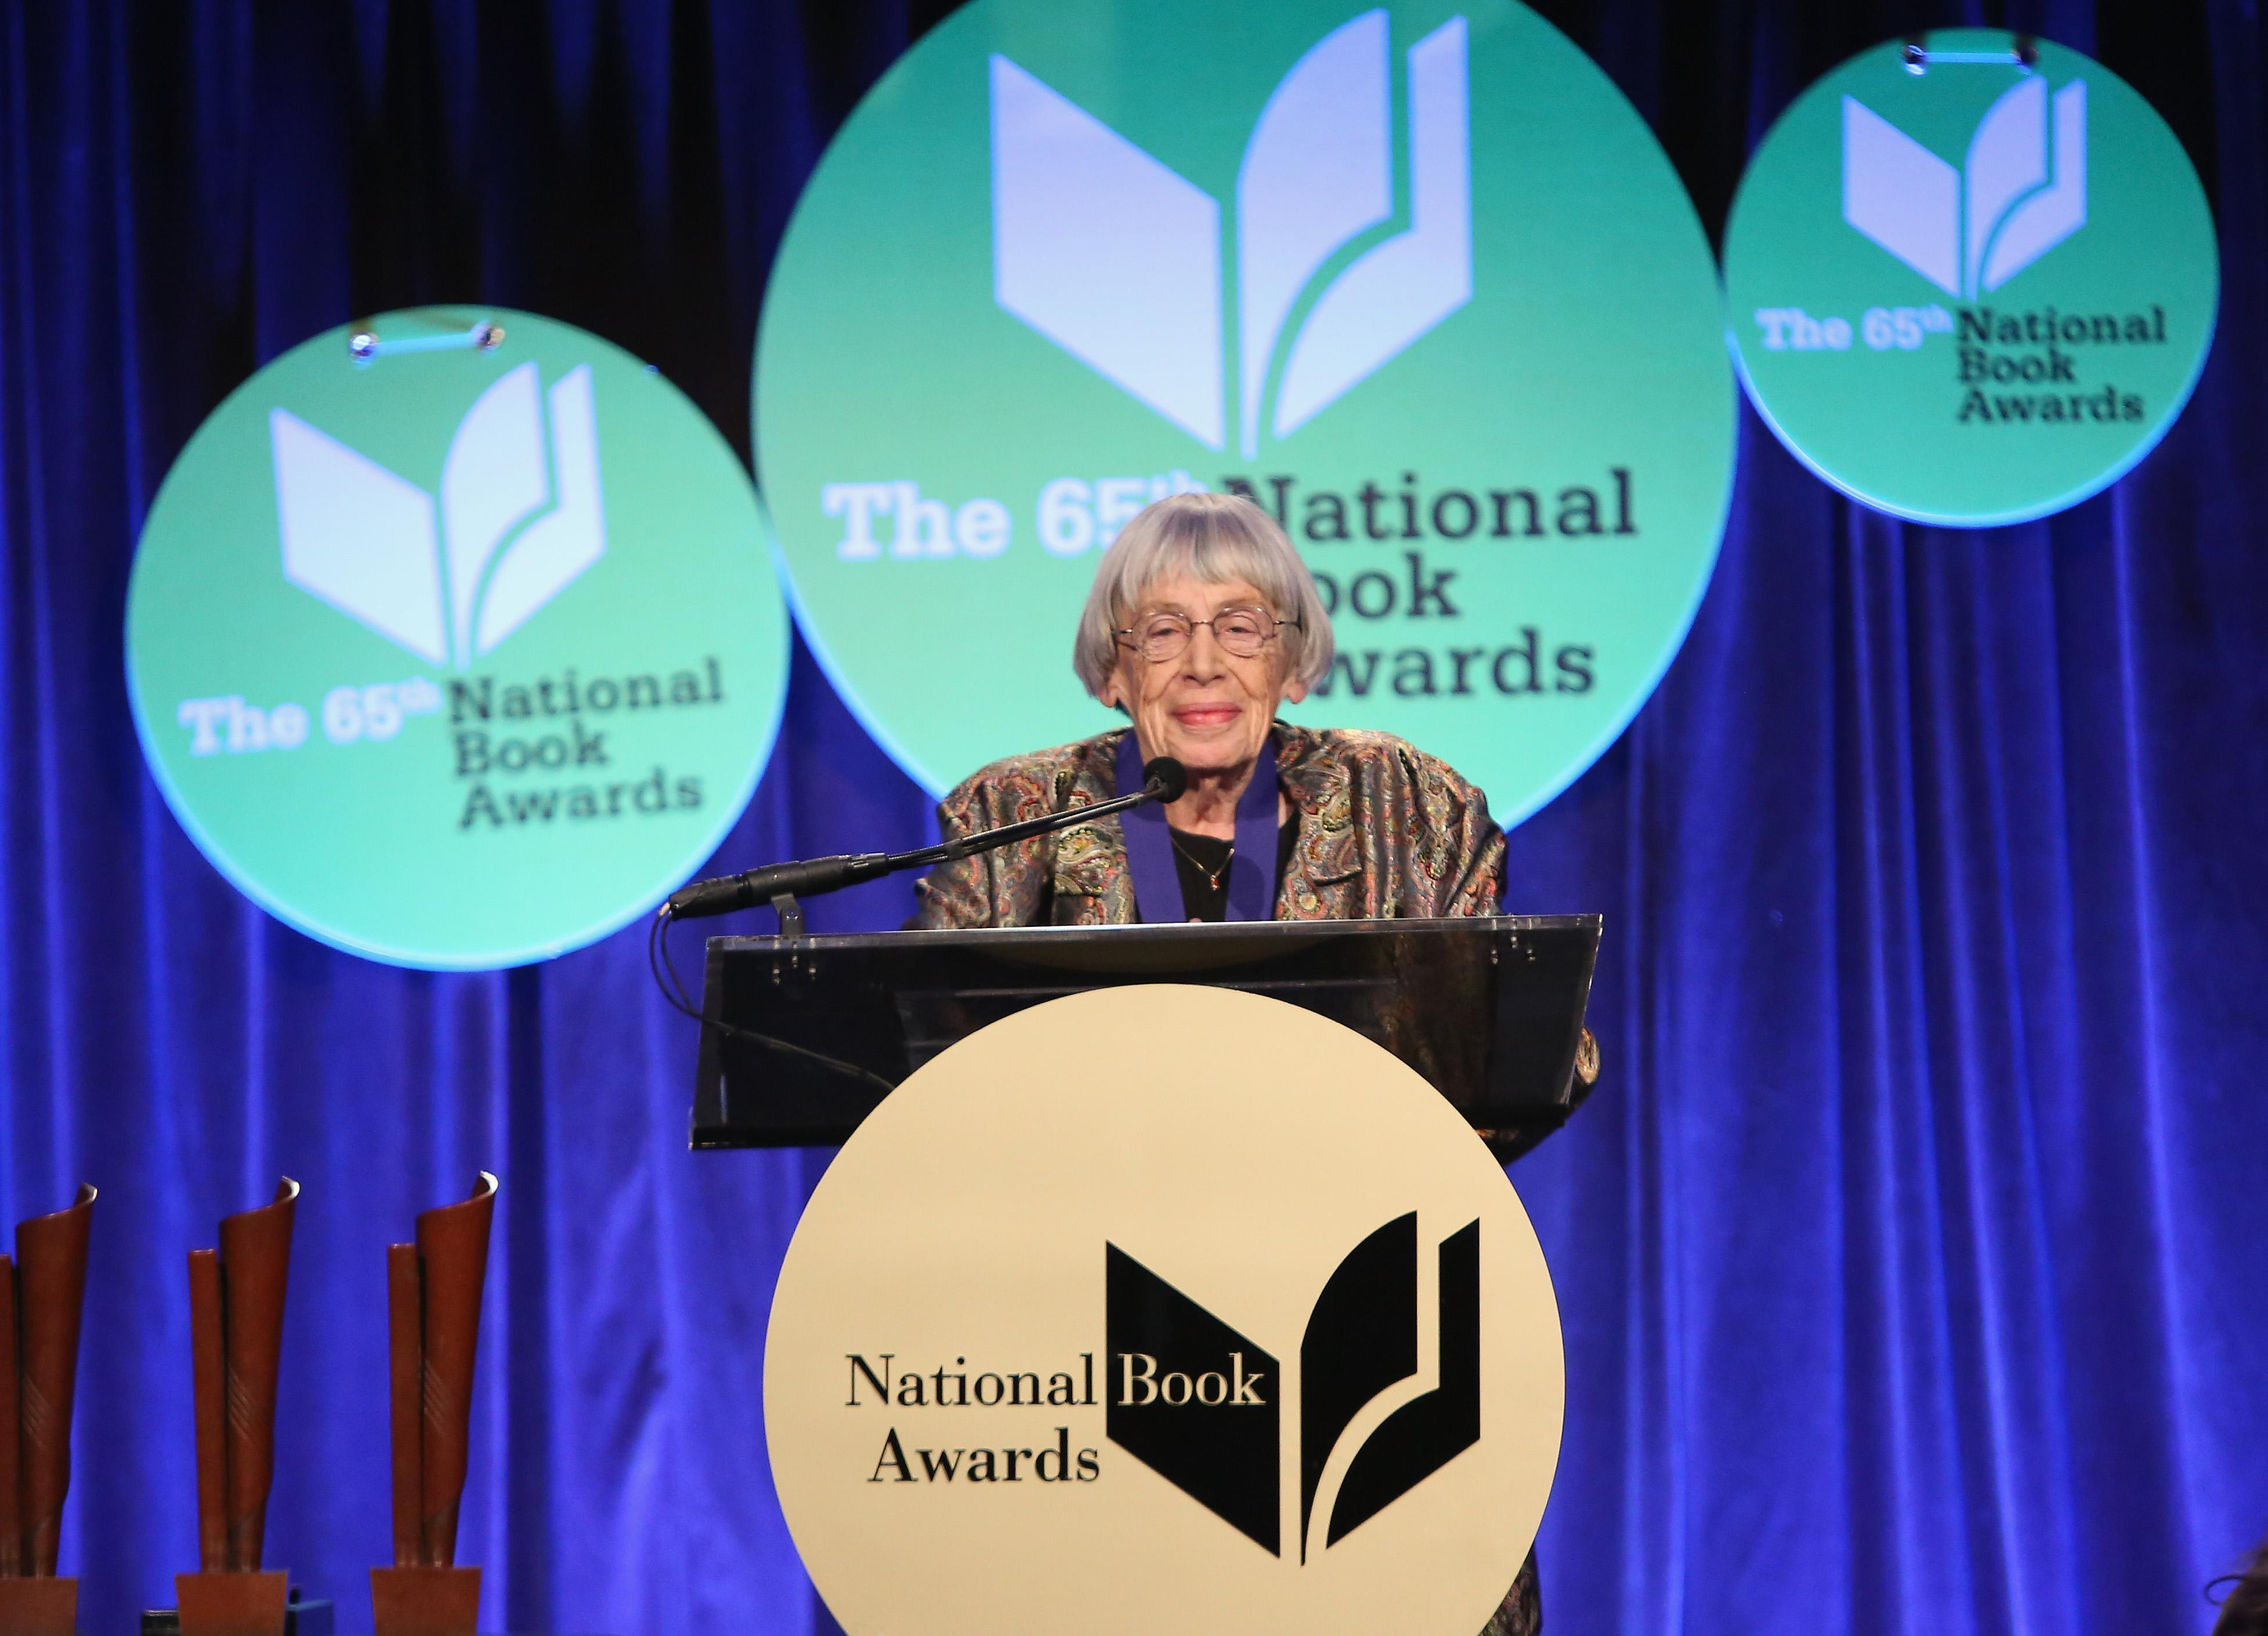 Ursula K. Le Guin stands at a podium.